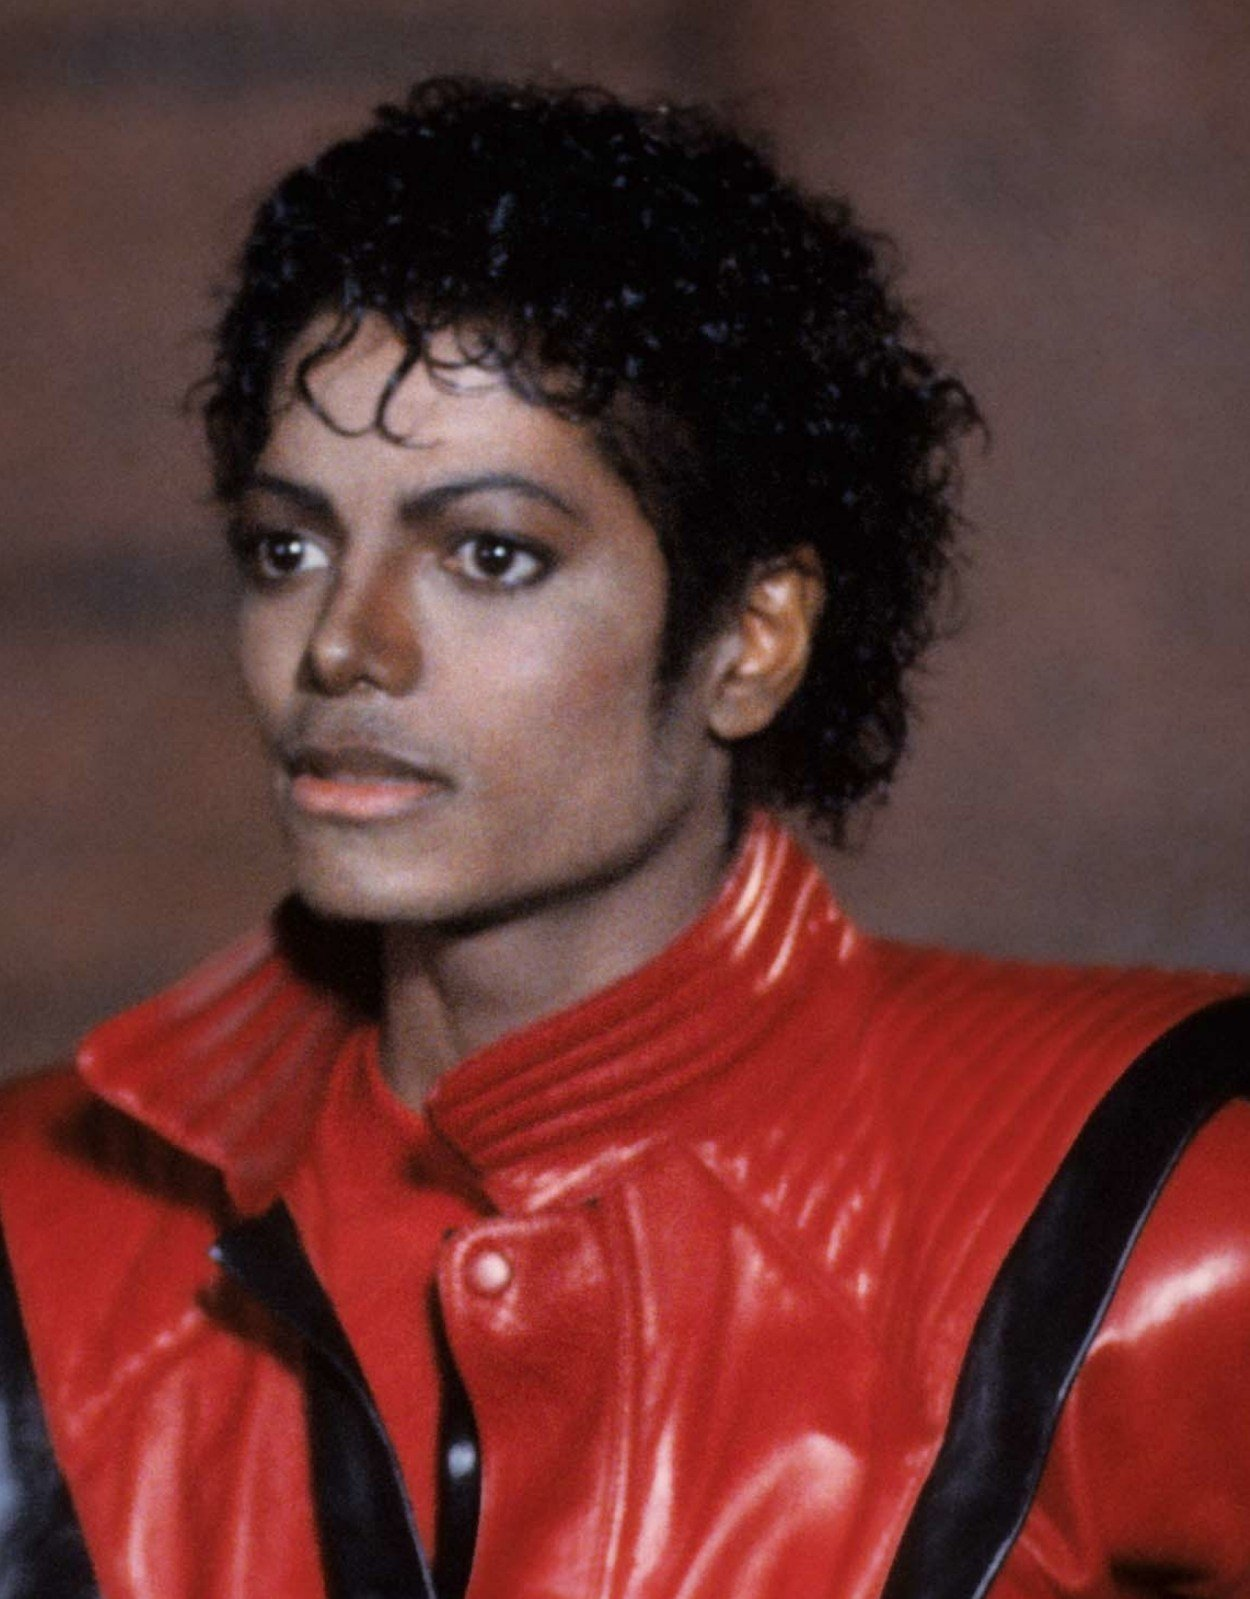 The Best Which Hairstyle Of Michael Jackson You Think That Match Pictures